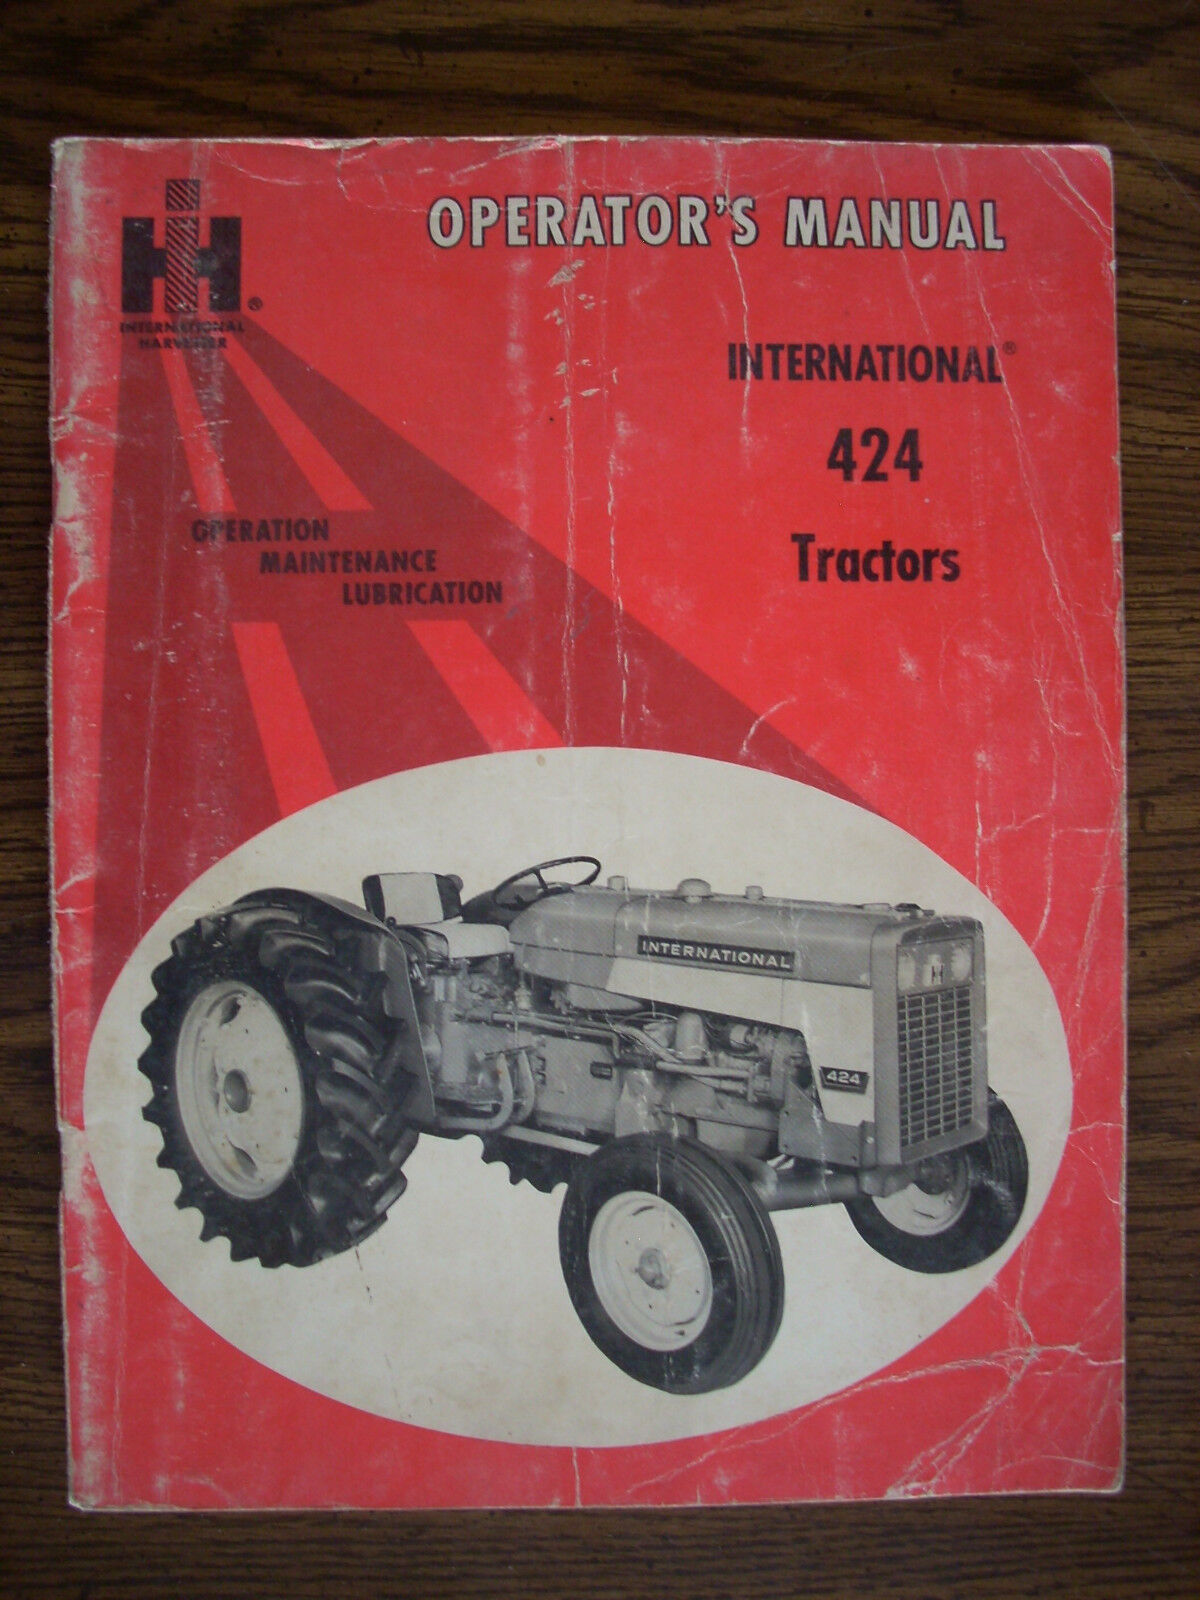 IH Farmall Mccormick International 424 Owners Manual 1 of 1Only 1 available  ...